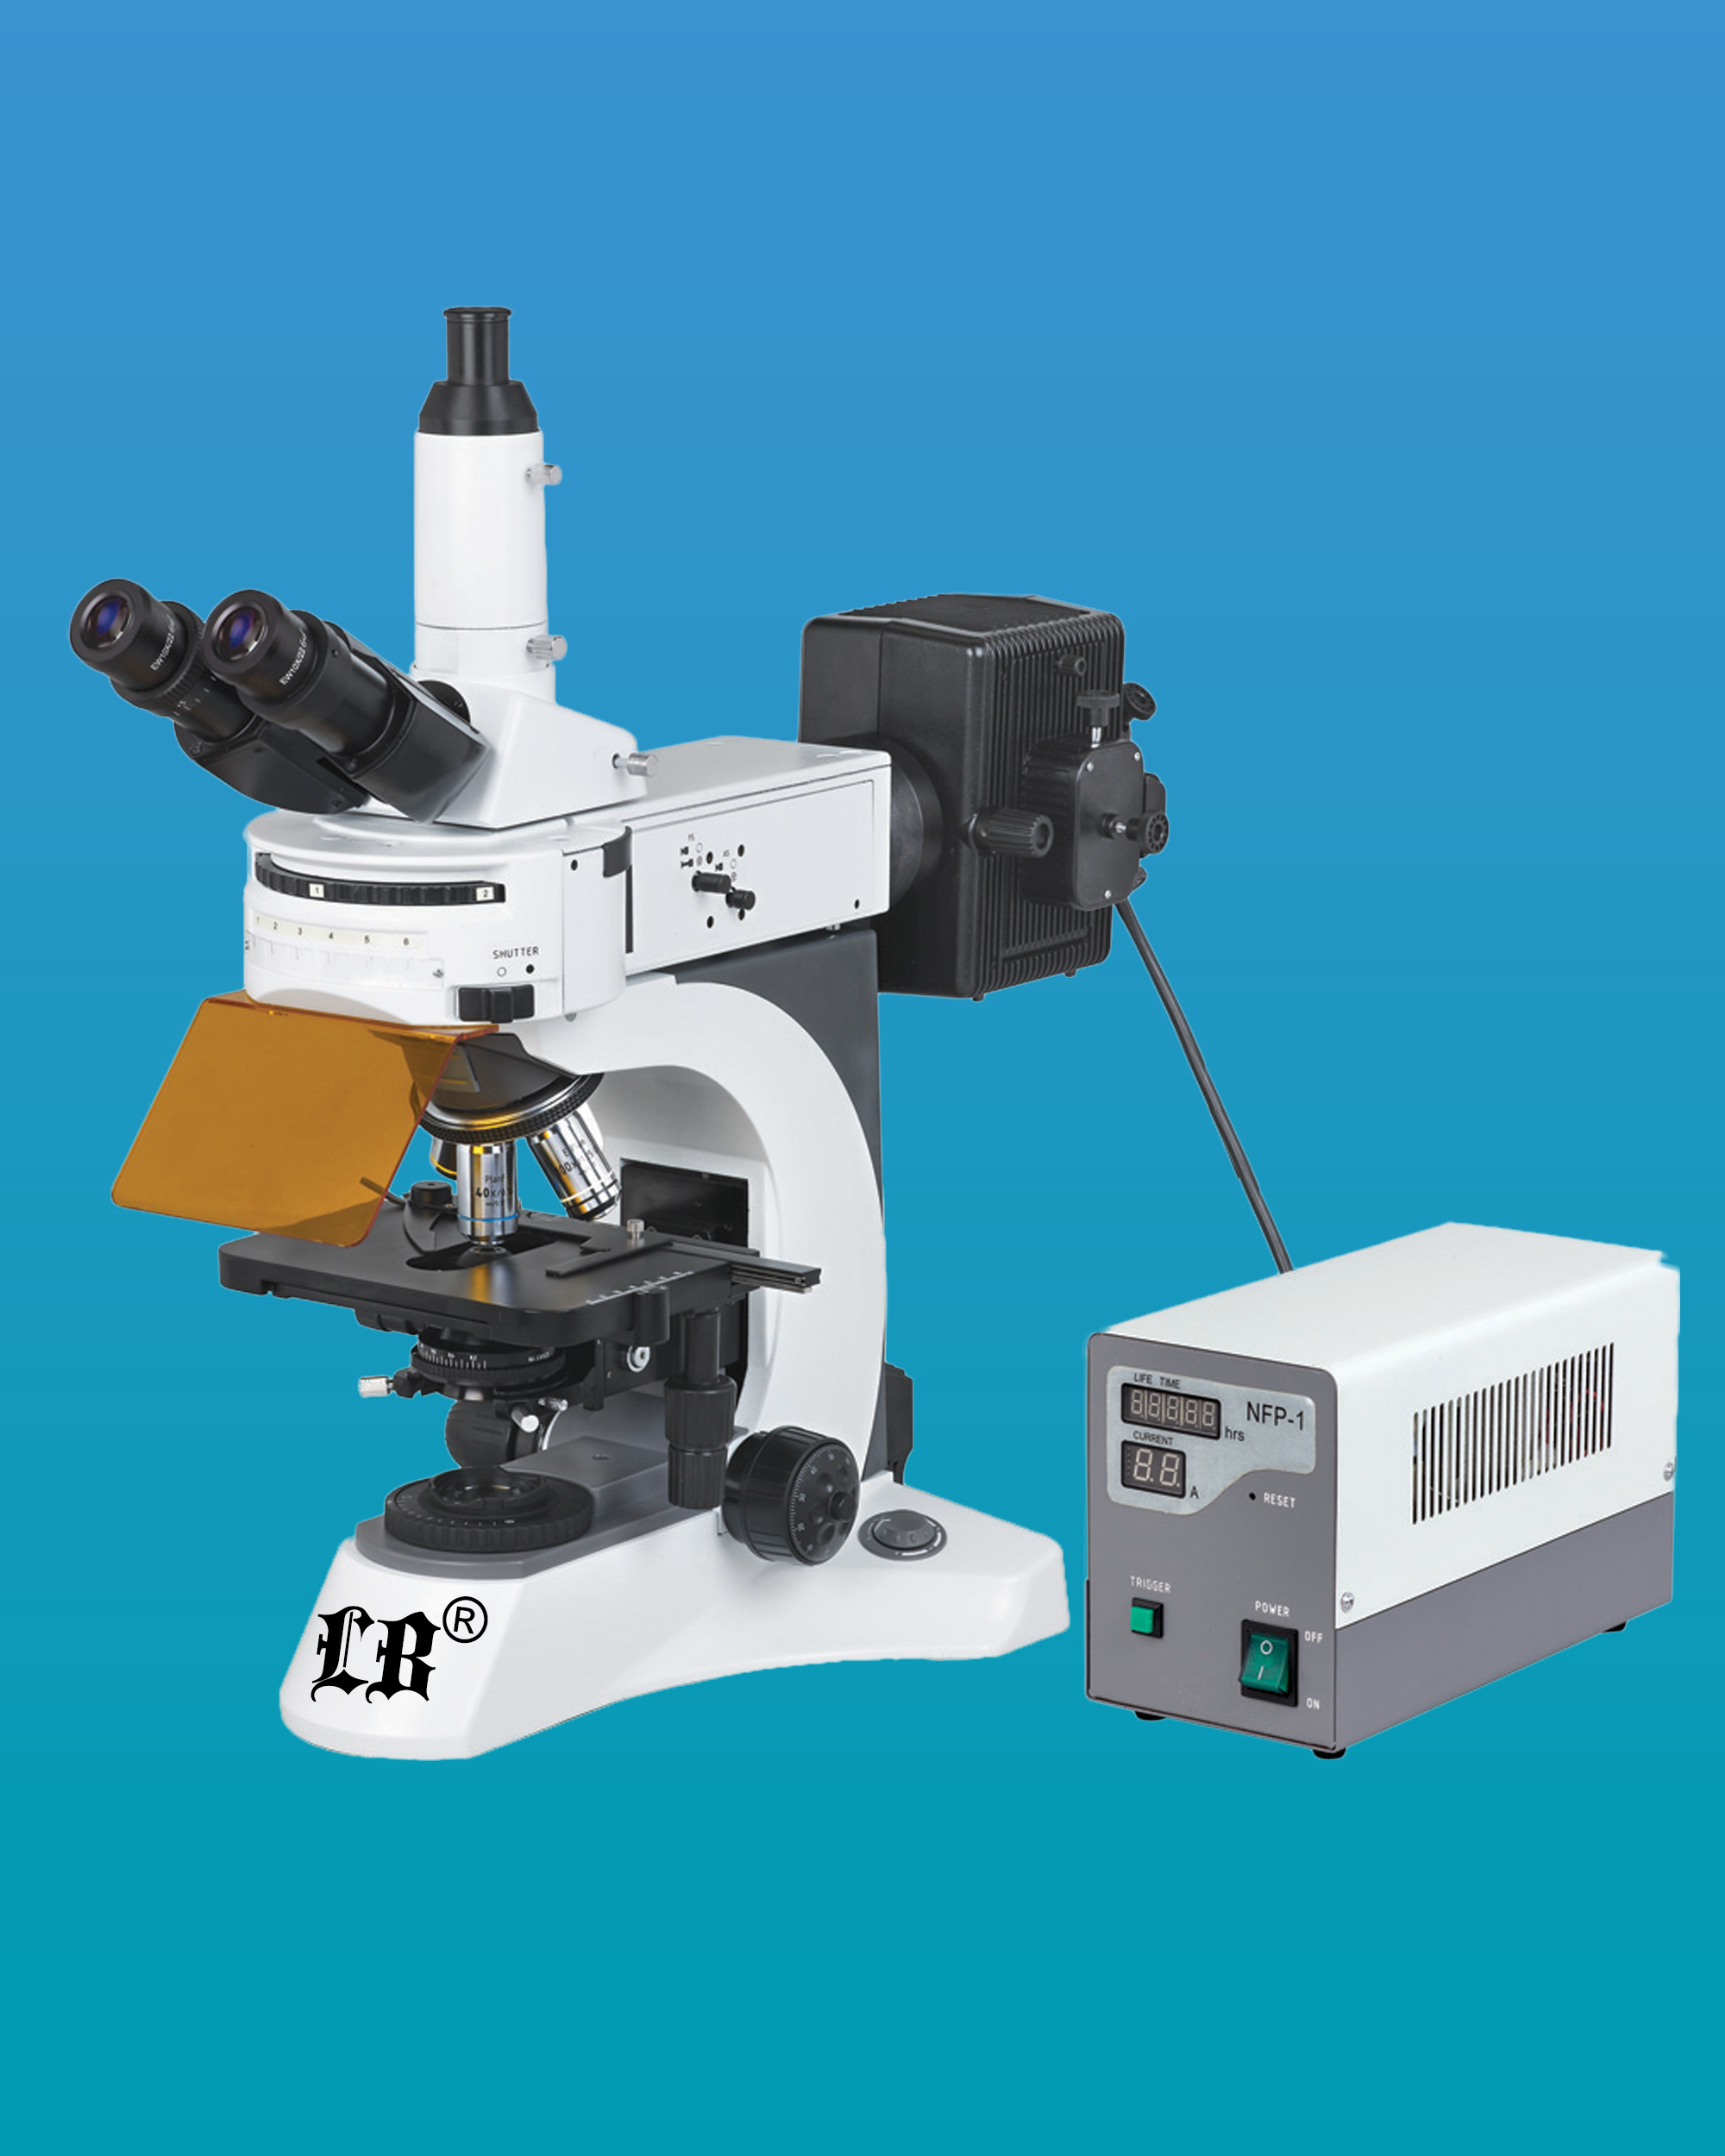 [LB-701] Trinocular Upright Flourescent Biological Microscope w/ Infinite Optical System